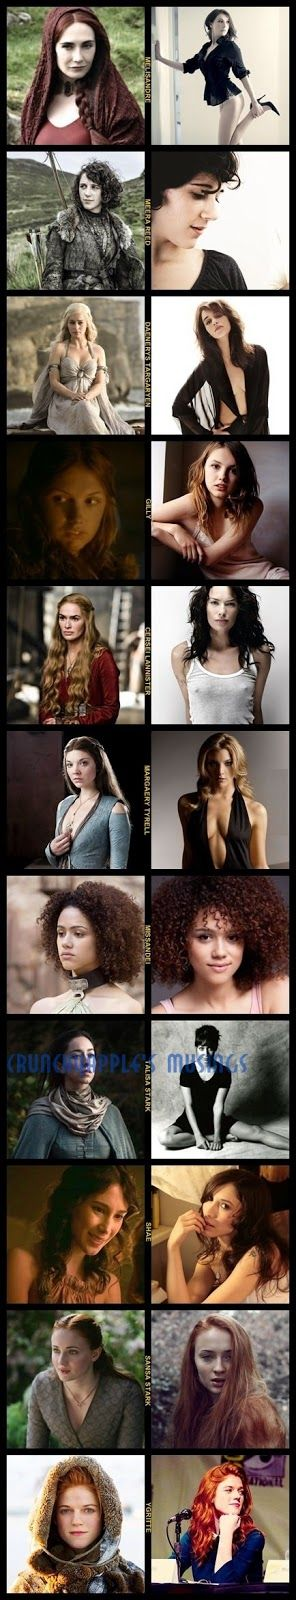 Game of Thrones Women Characters | CrunchyApple's Musings: The Real Women Of Game Of Thrones